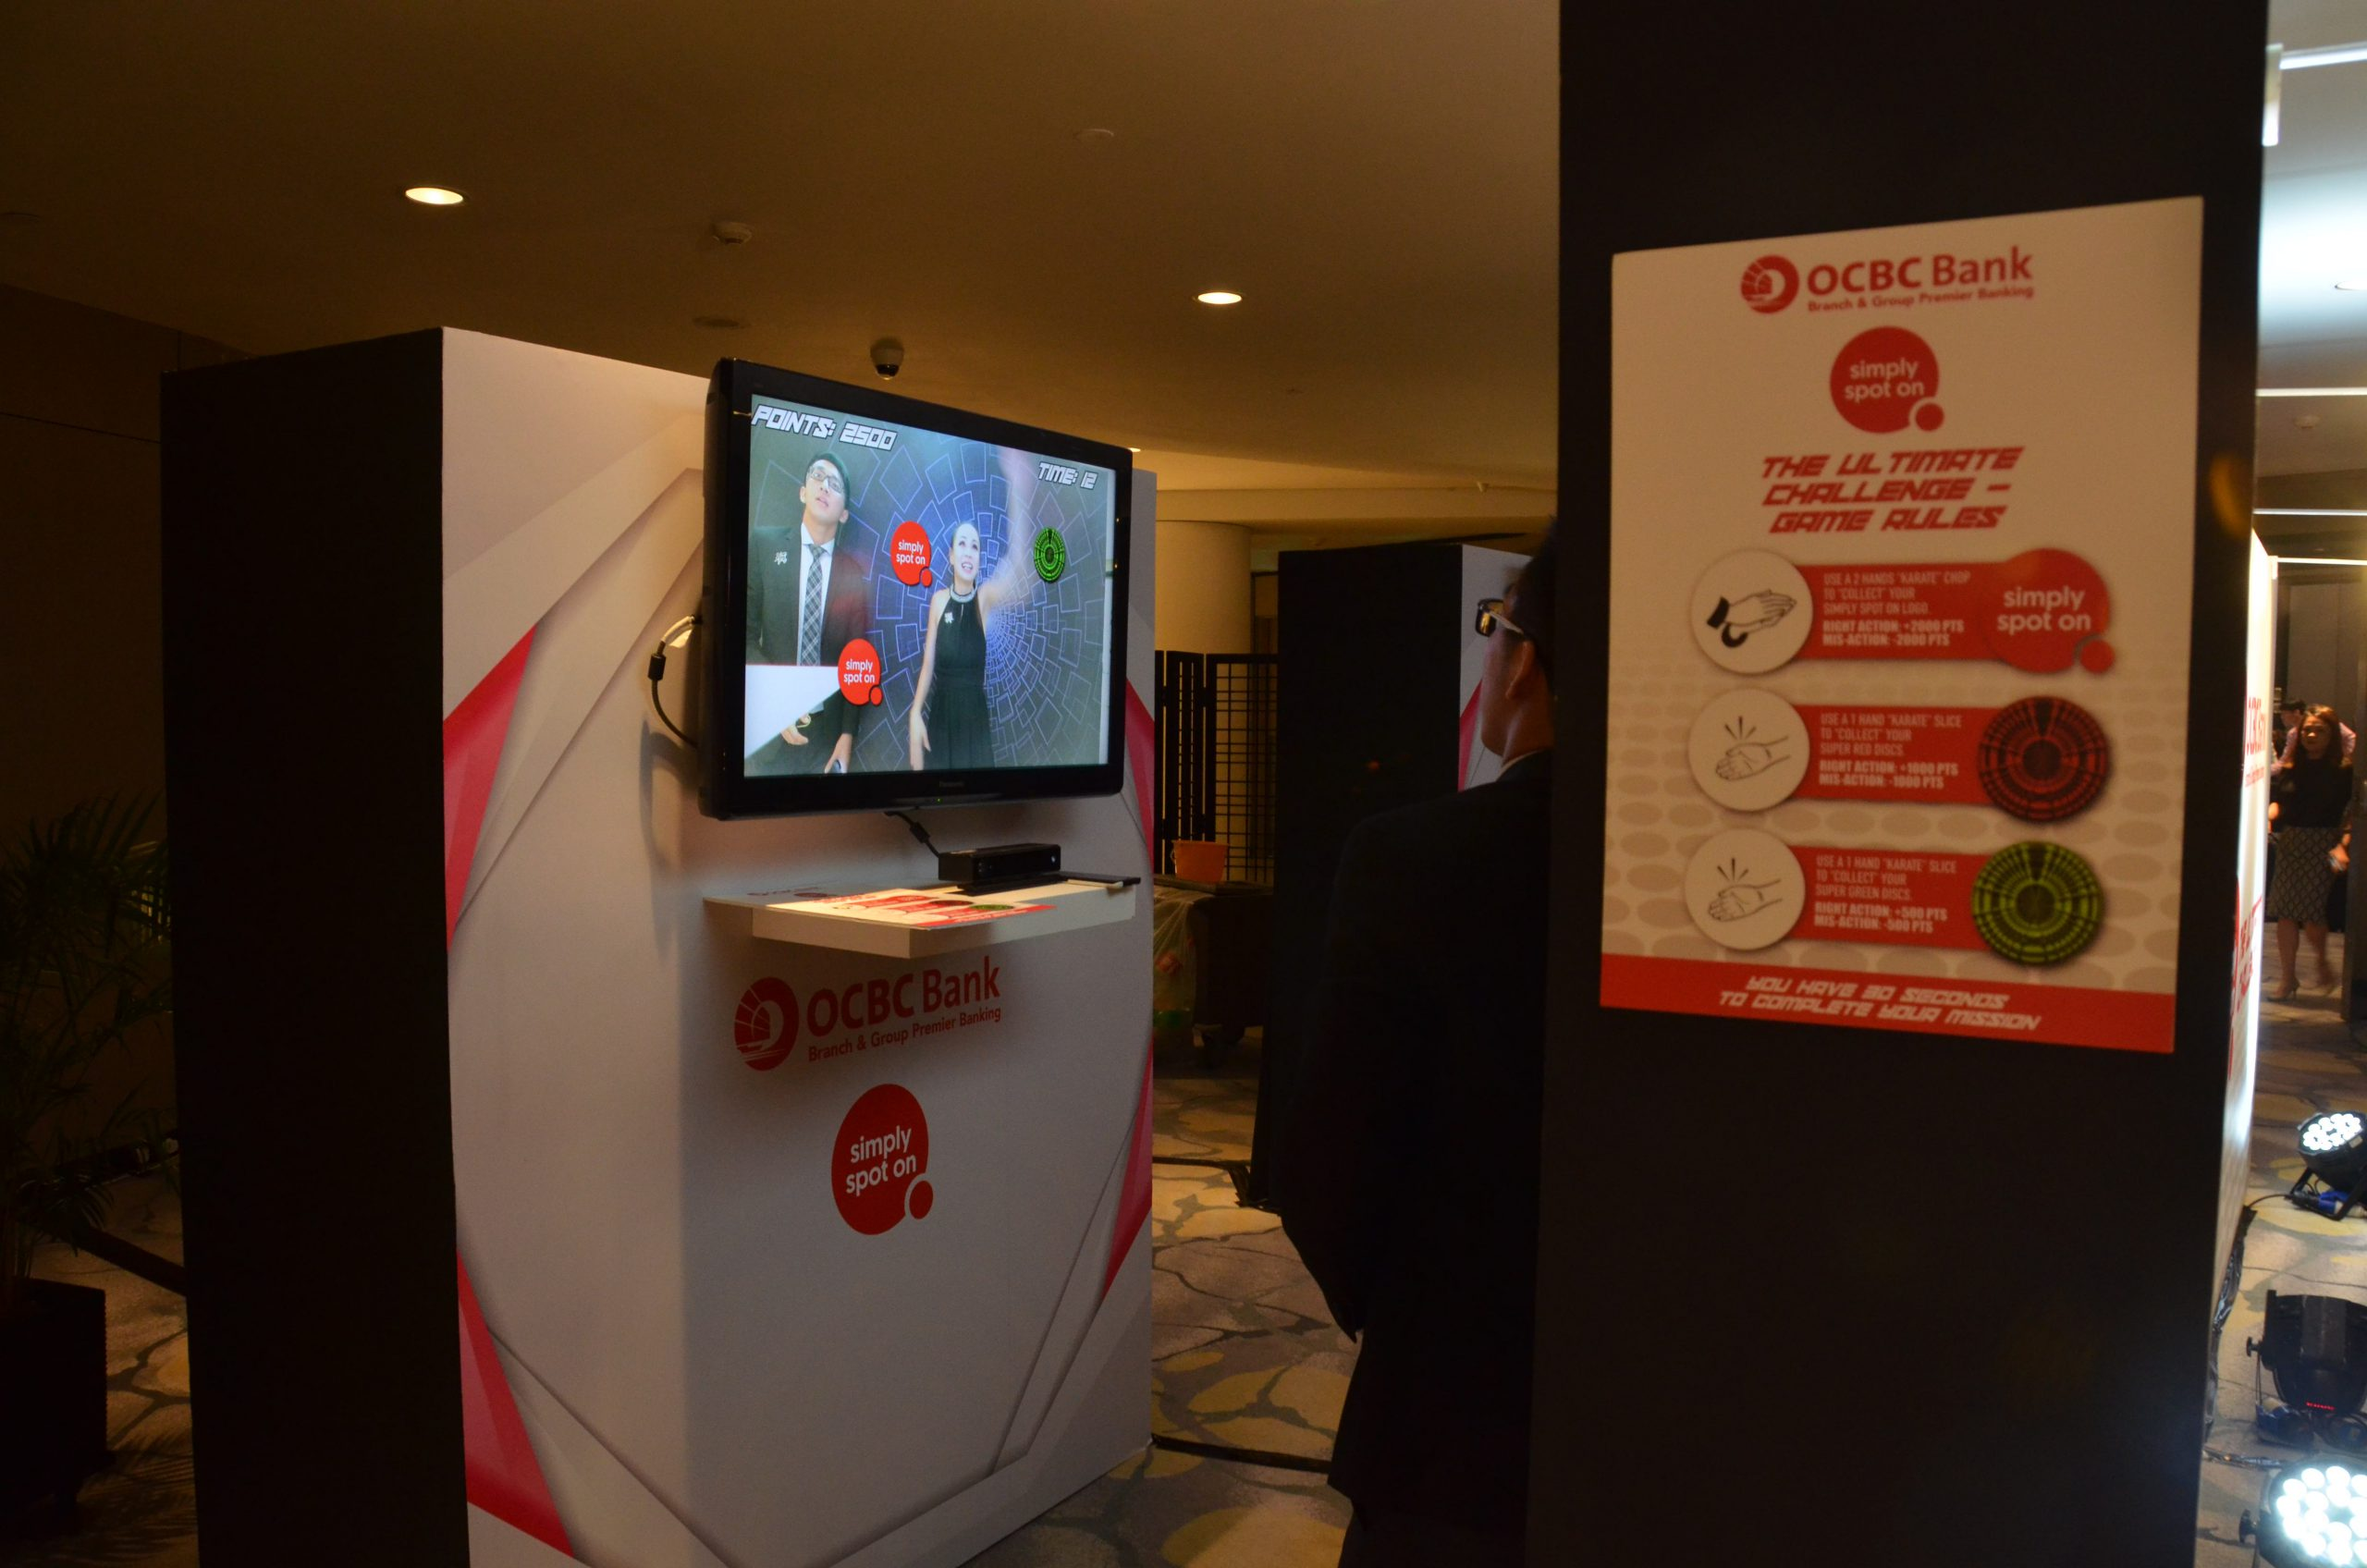 Office workers interacting with OCBC Quick Reaction Game Kiosk